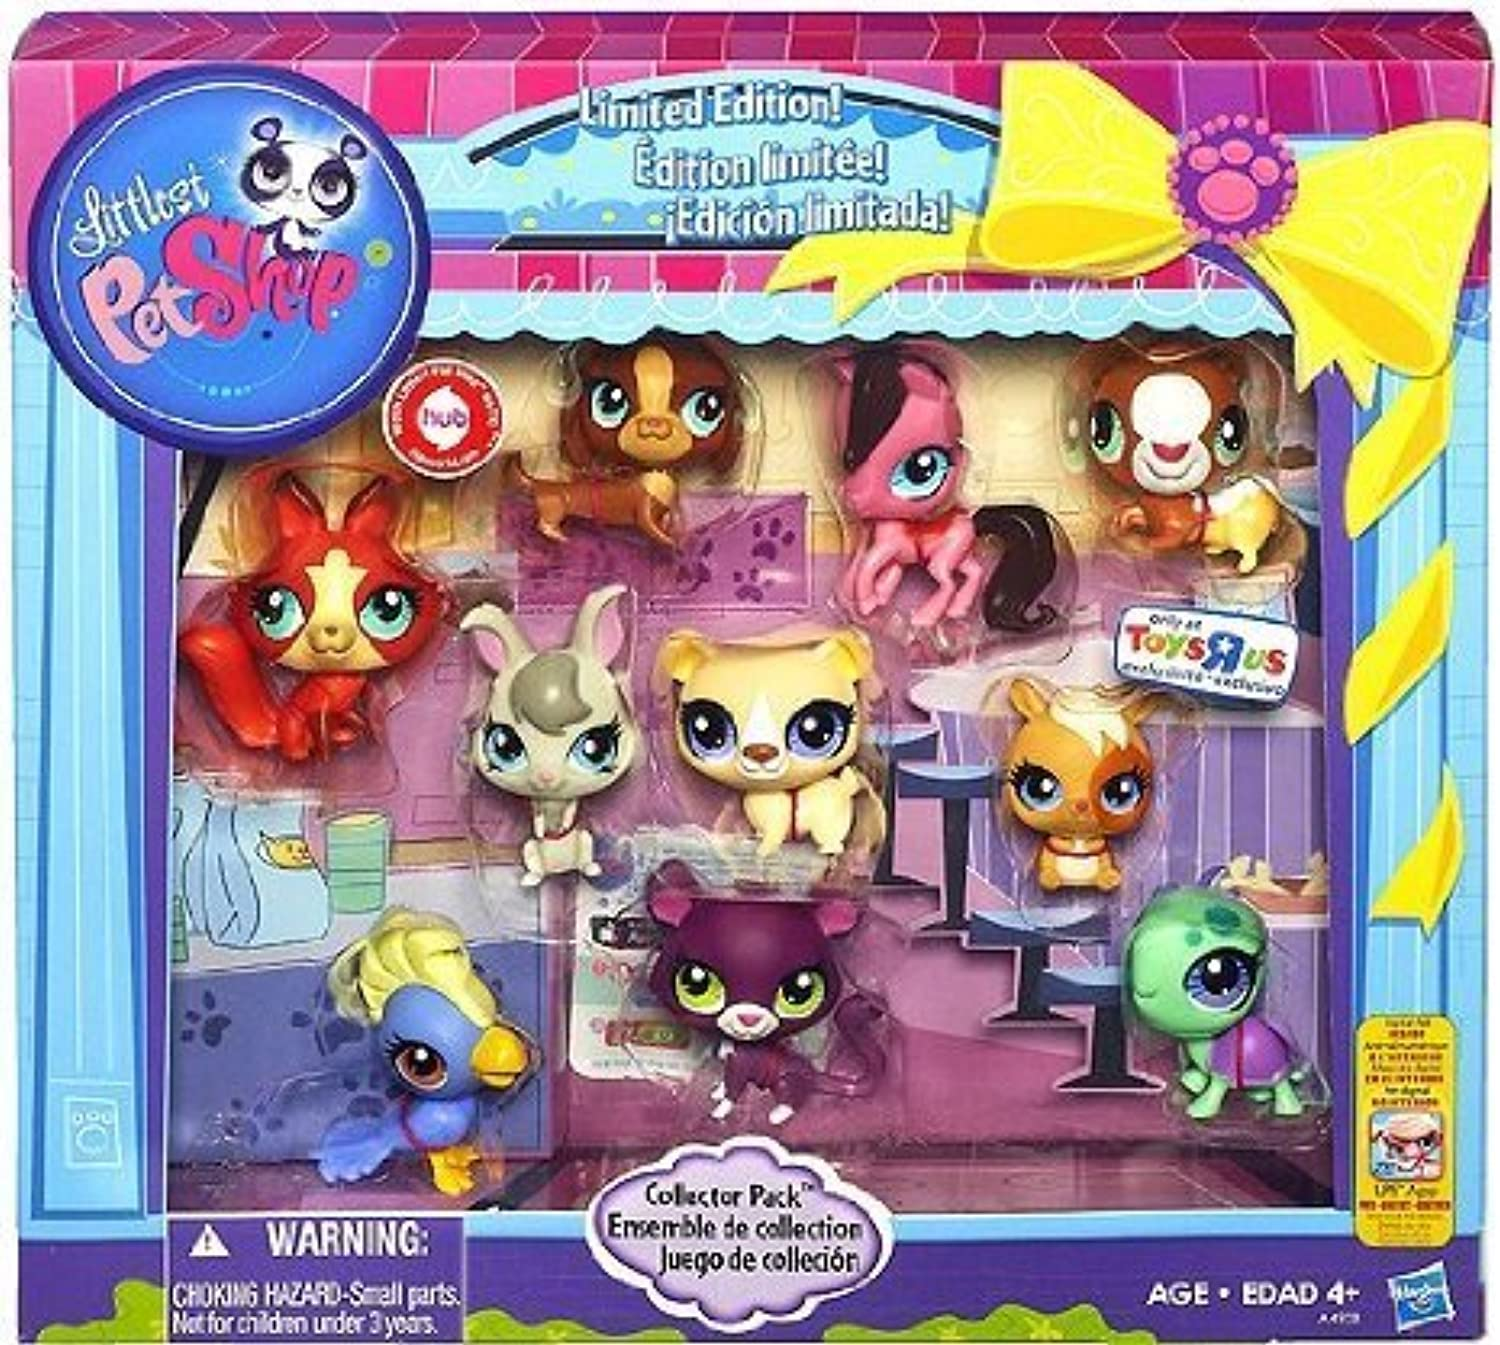 Littlest Pet Shop (リトルペットショップ) Limited Edition (限定品) Collector Pack(並行輸入)